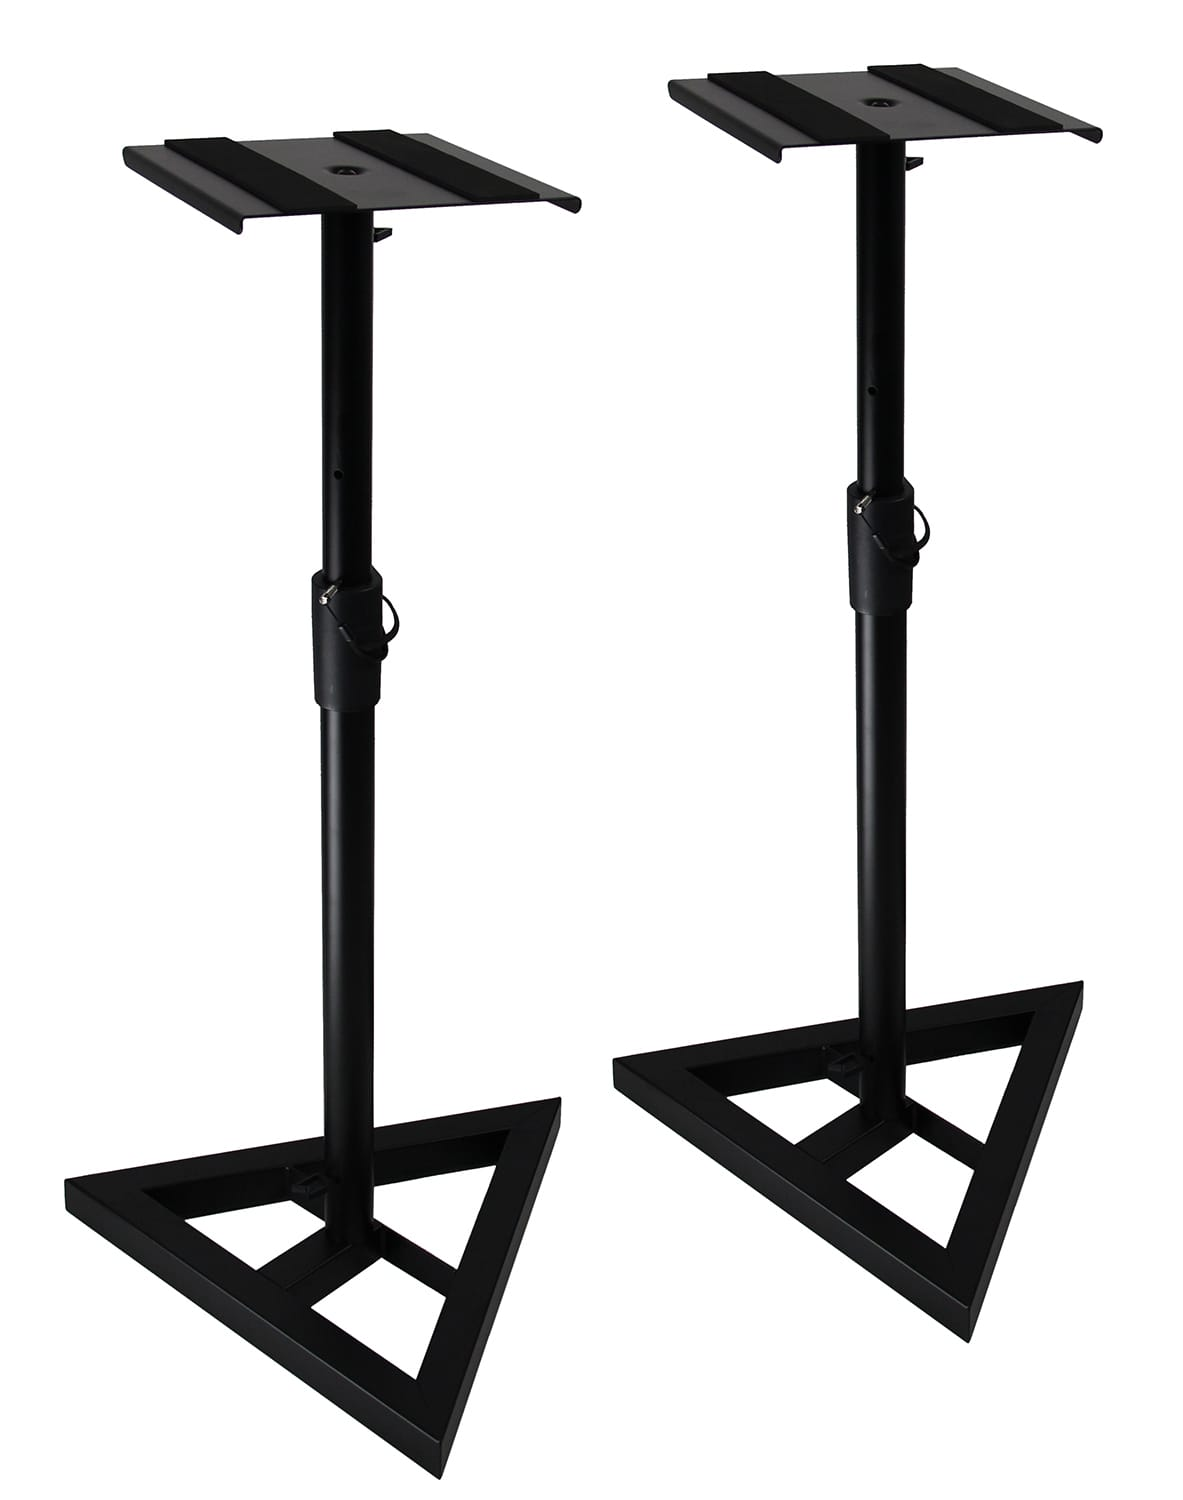 gearlux heavy duty studio monitor stands austin bazaar reverb. Black Bedroom Furniture Sets. Home Design Ideas